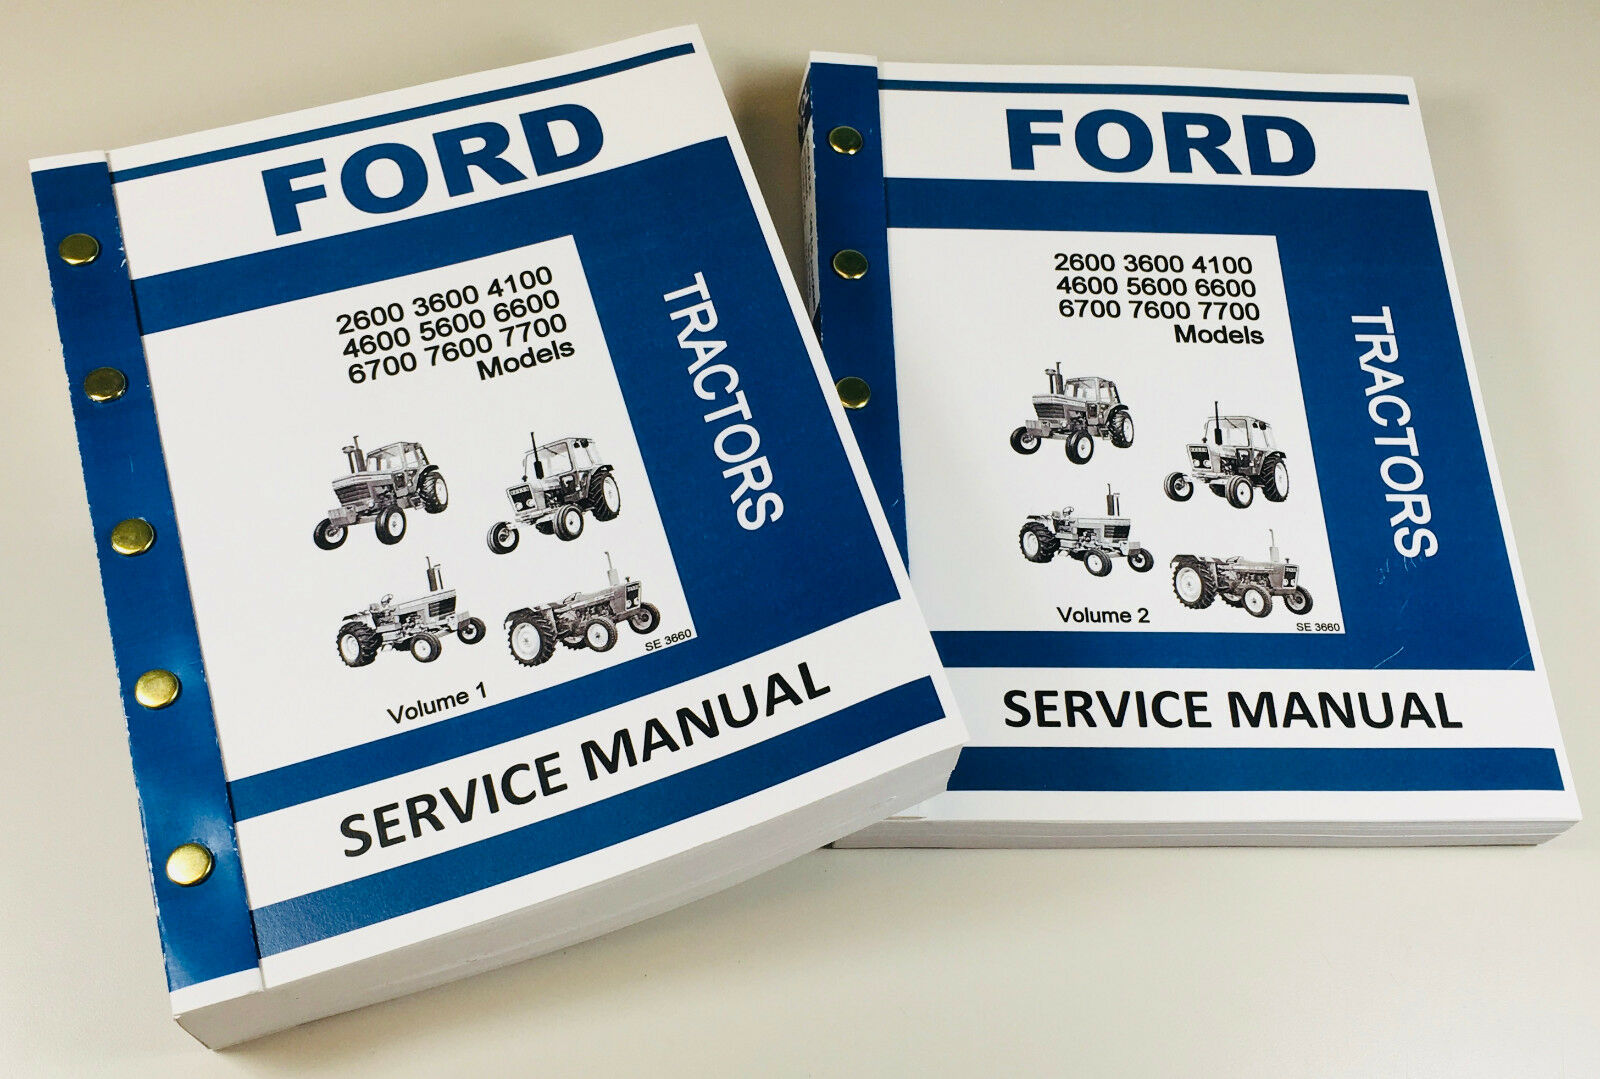 These comprehensive manuals include